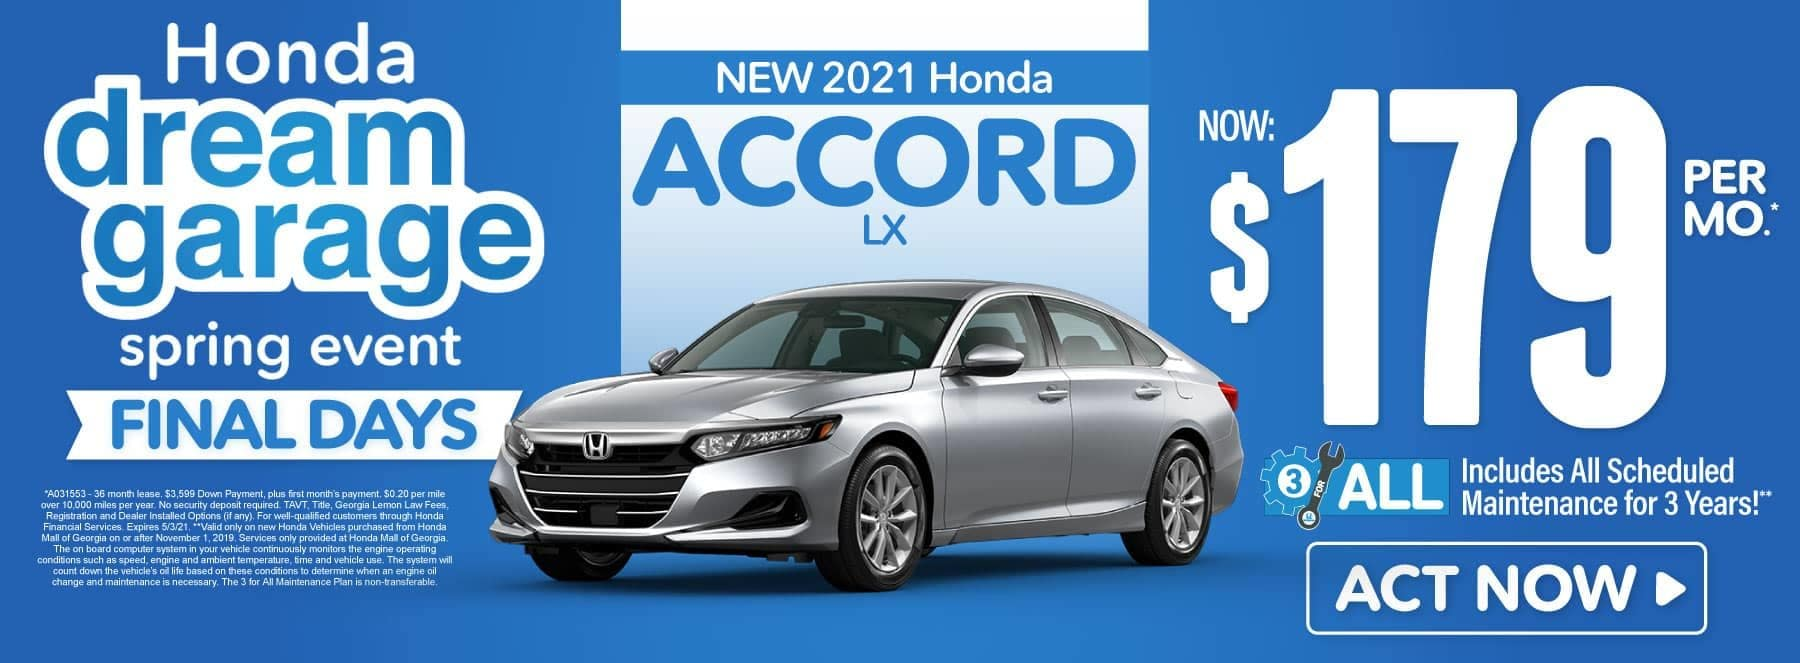 New 2021 Honda Accord | Now $179 per month | Act Now